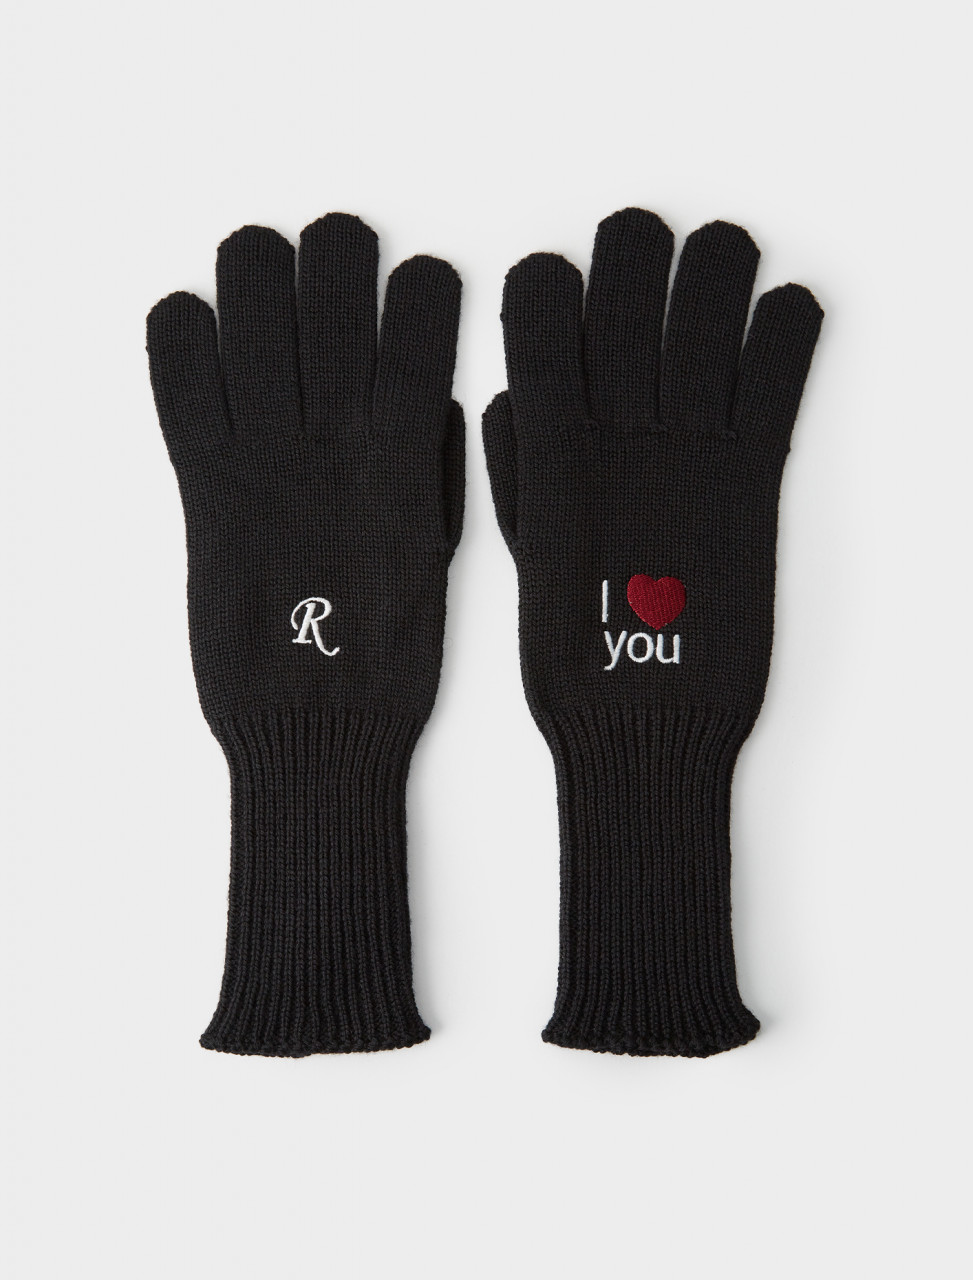 162-202-853-50024-00099 RAF SIMONS AW20 21 I LOVE YOU KNITTED GLOVES